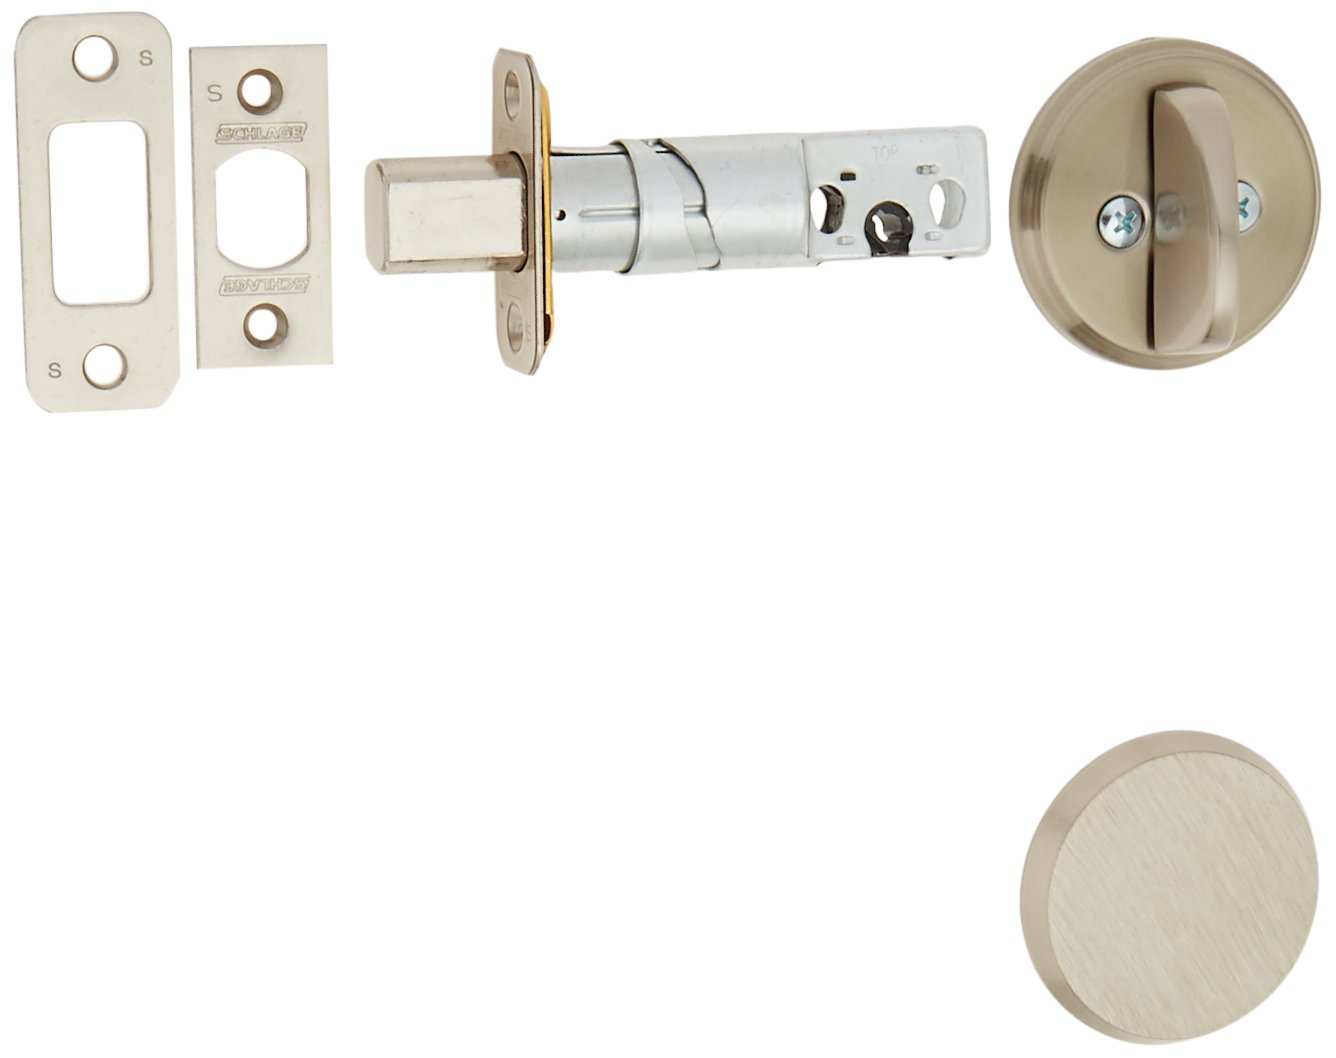 schlage deadbolt parts amazon comschlage b81619 satin nickel single sided residential deadbolt with thumbturn and outside trim plate from the